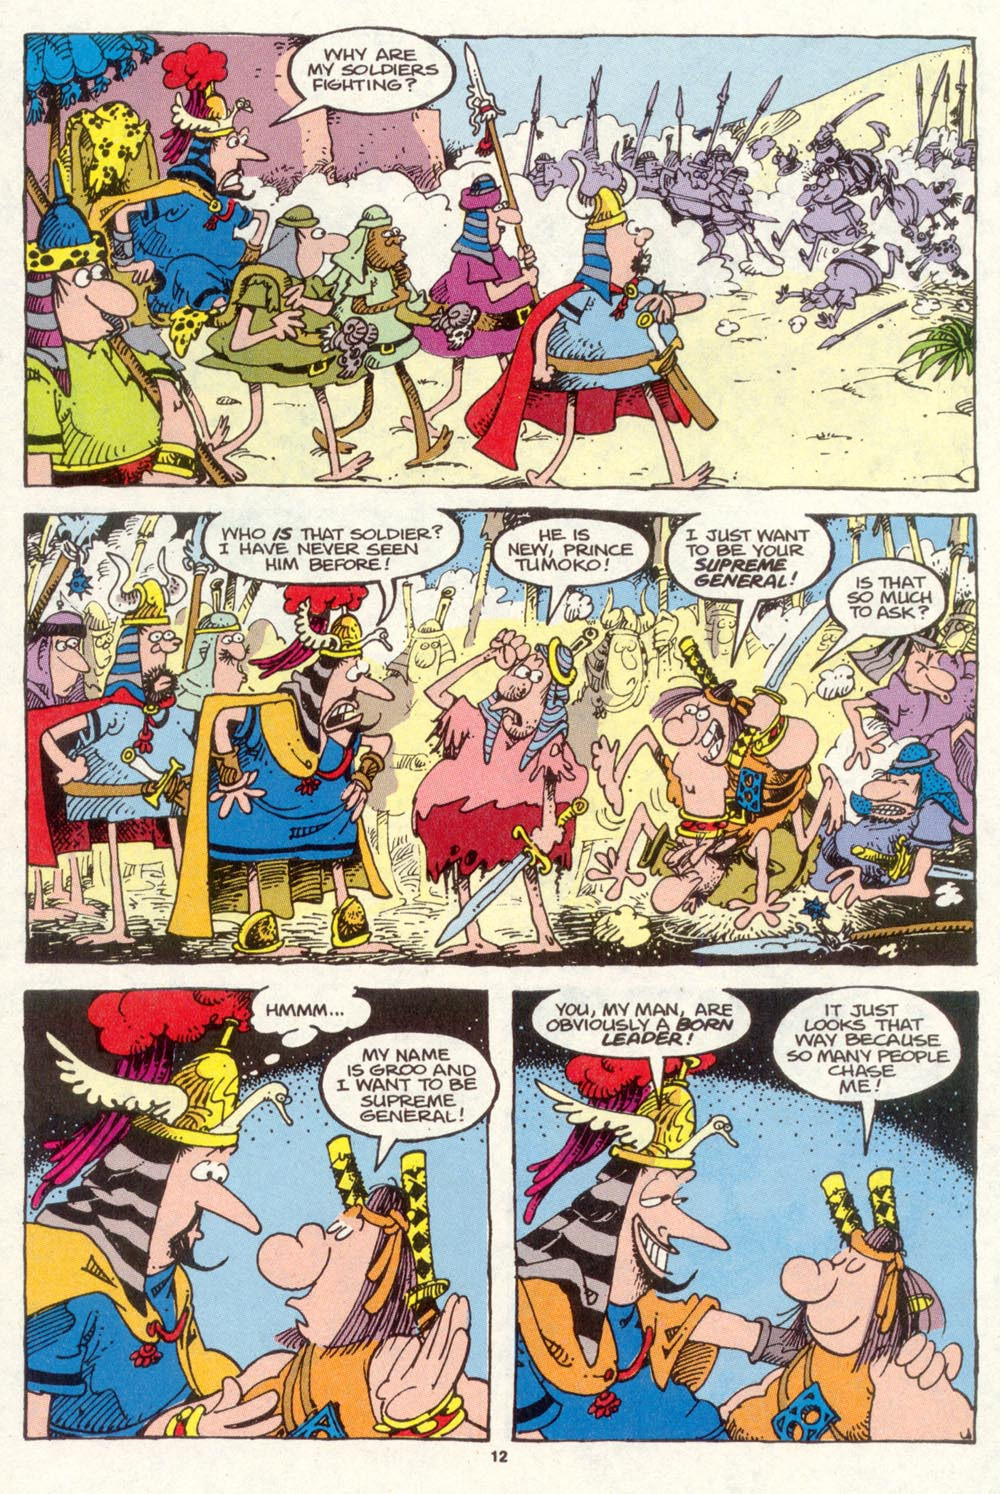 Read online Sergio Aragonés Groo the Wanderer comic -  Issue #87 - 13